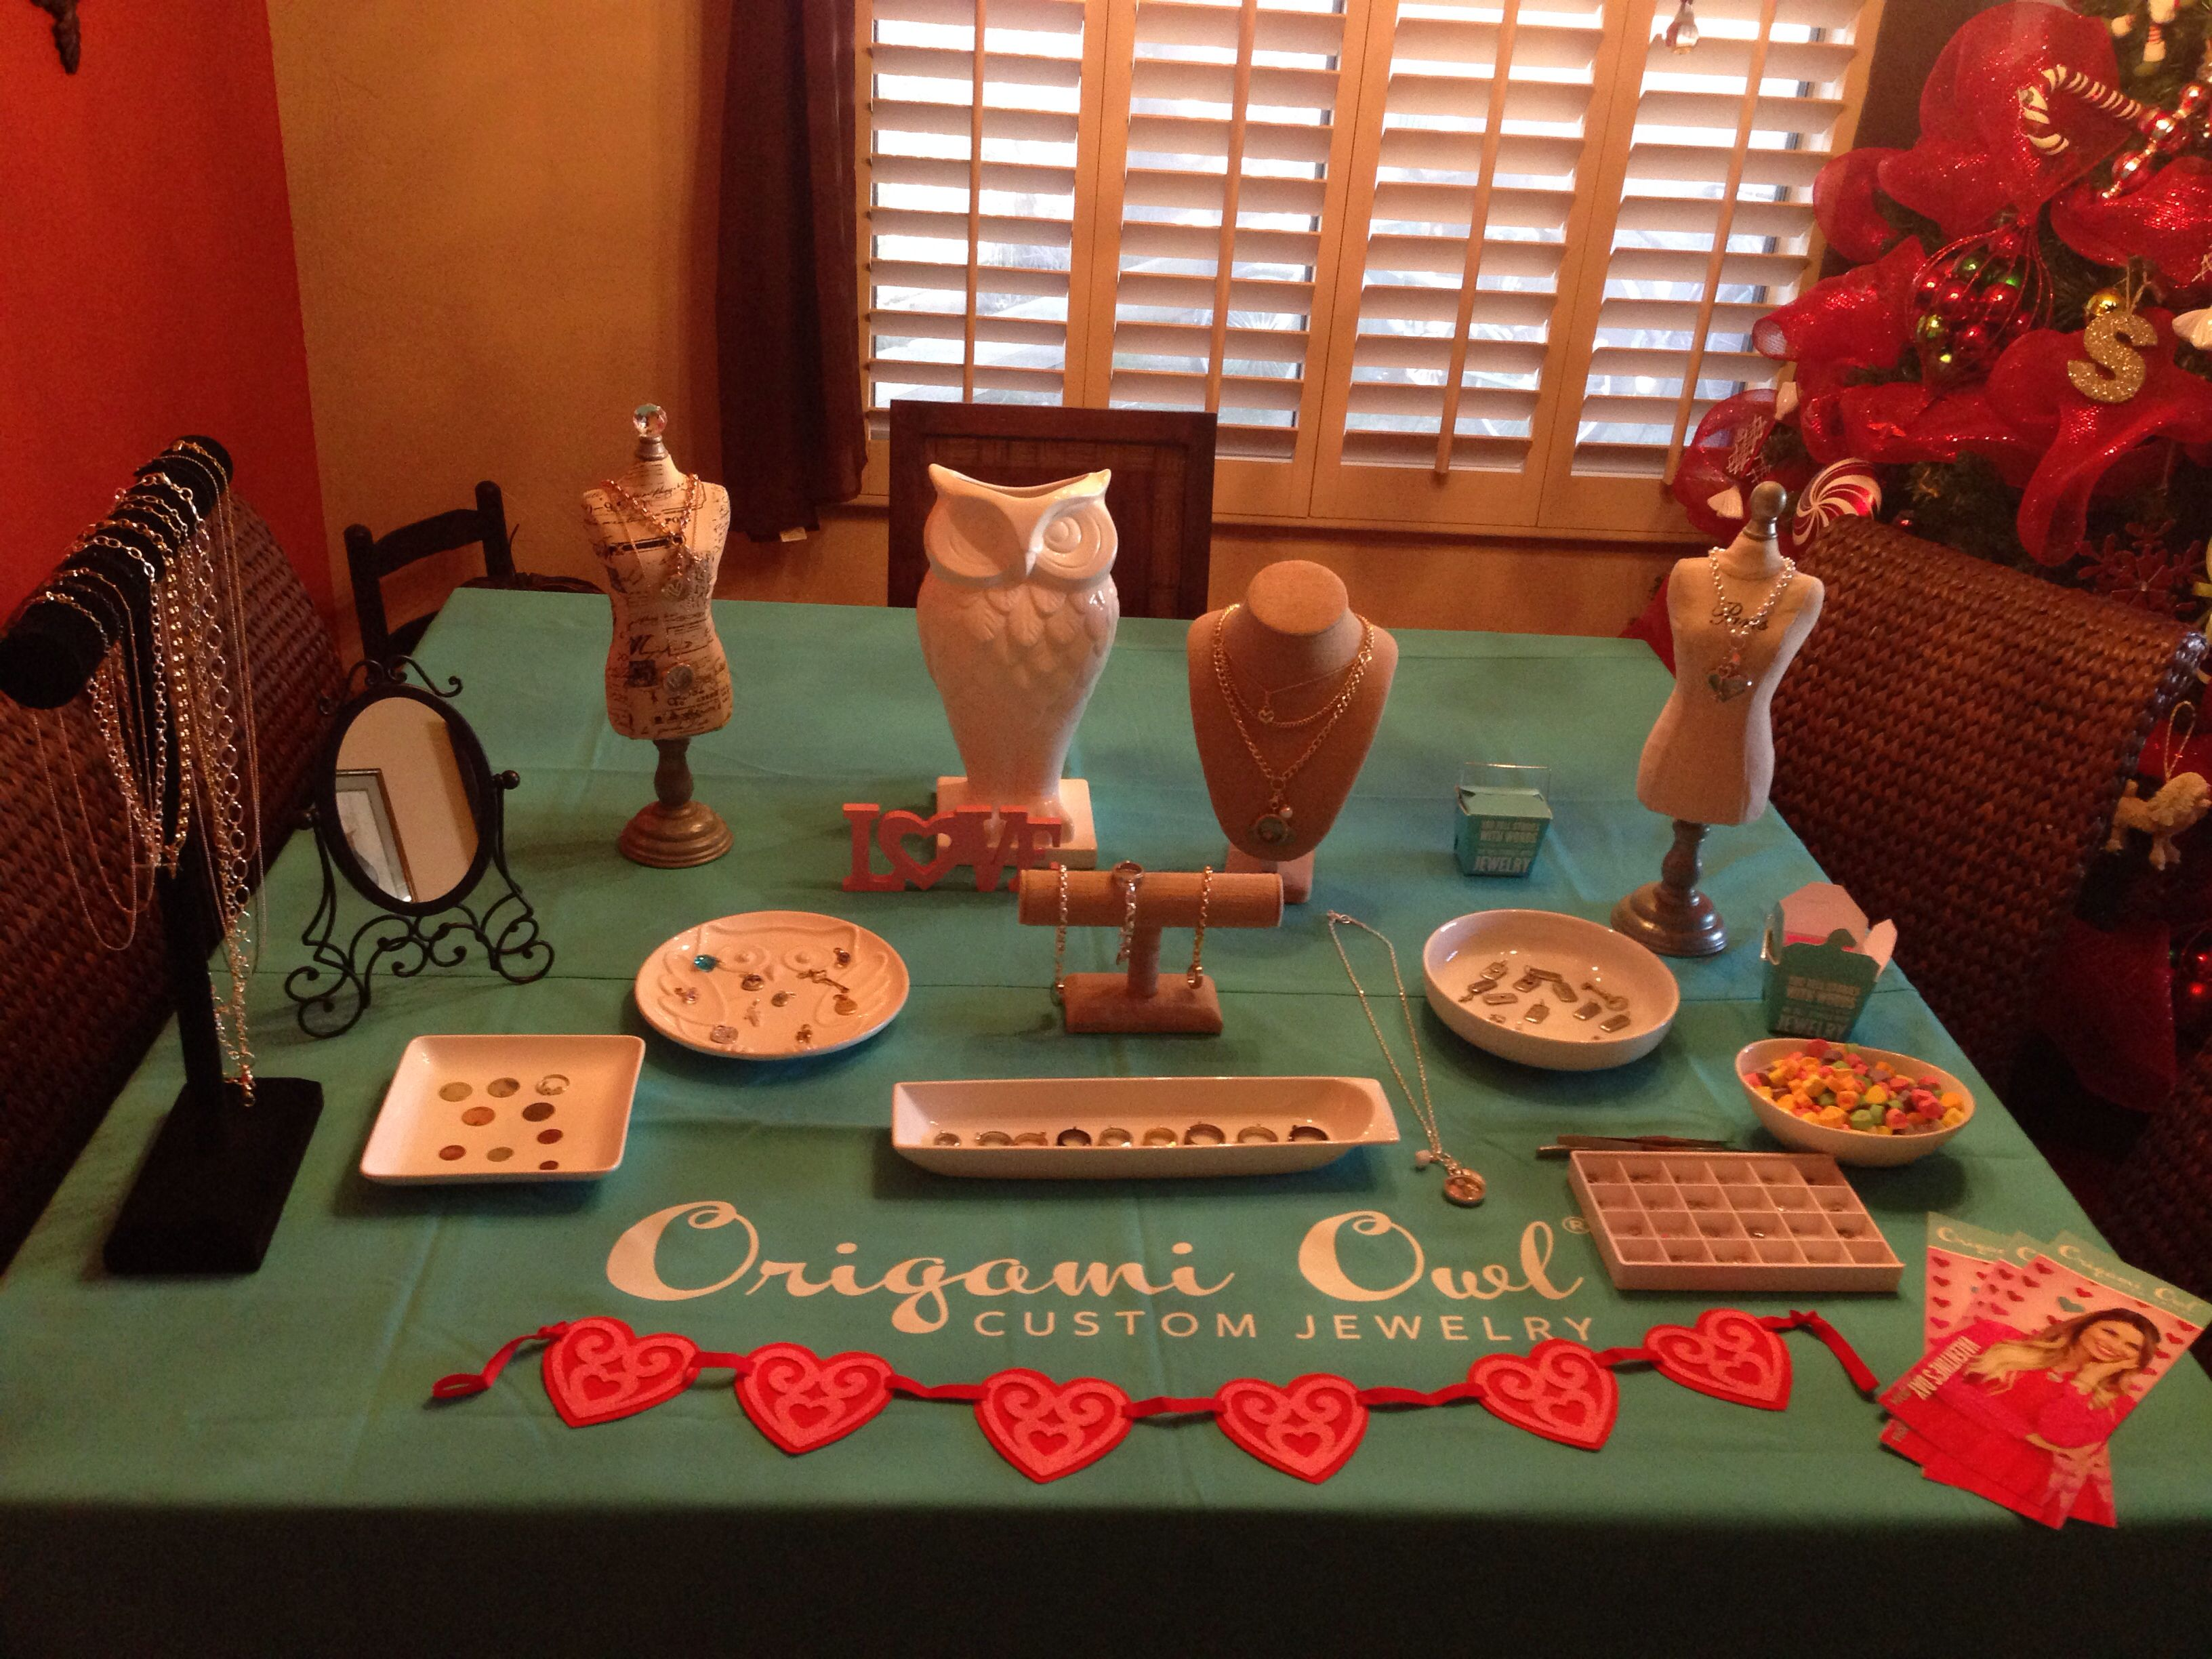 Origami owl Jewelry Bar set up, valentines day themed! Meghanclark.origamiowl.com